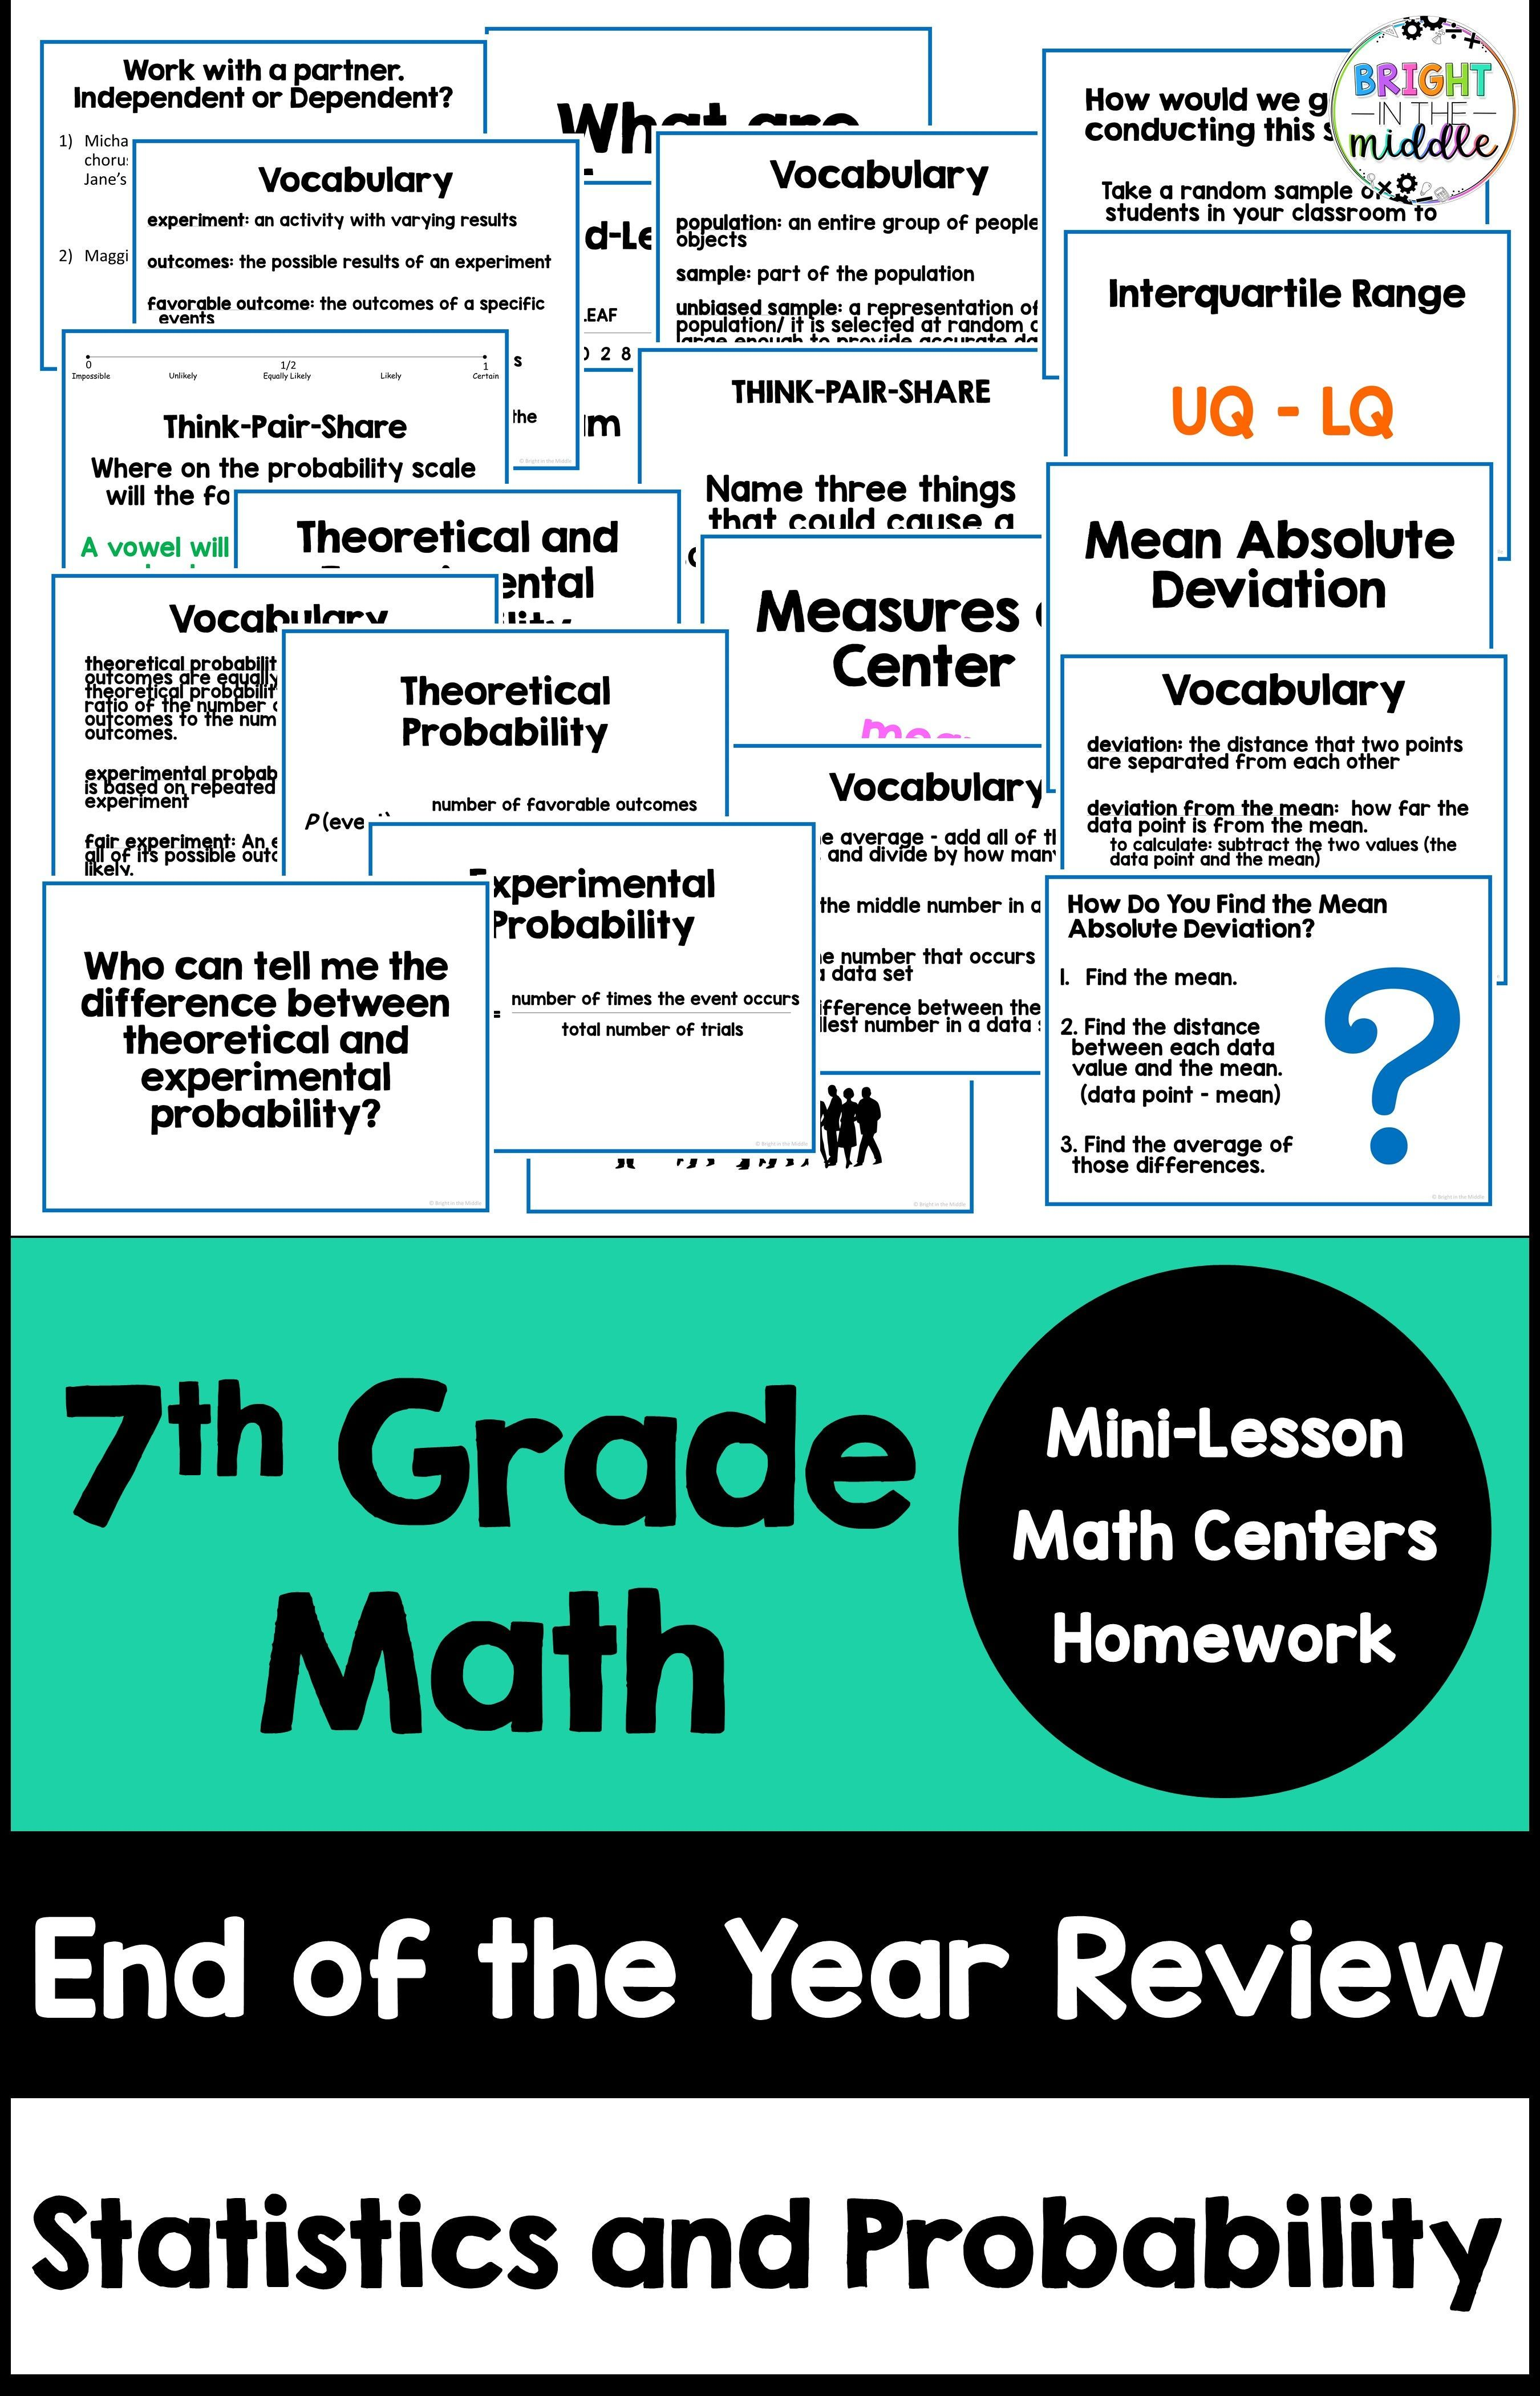 7th Grade Math End Of Year Review